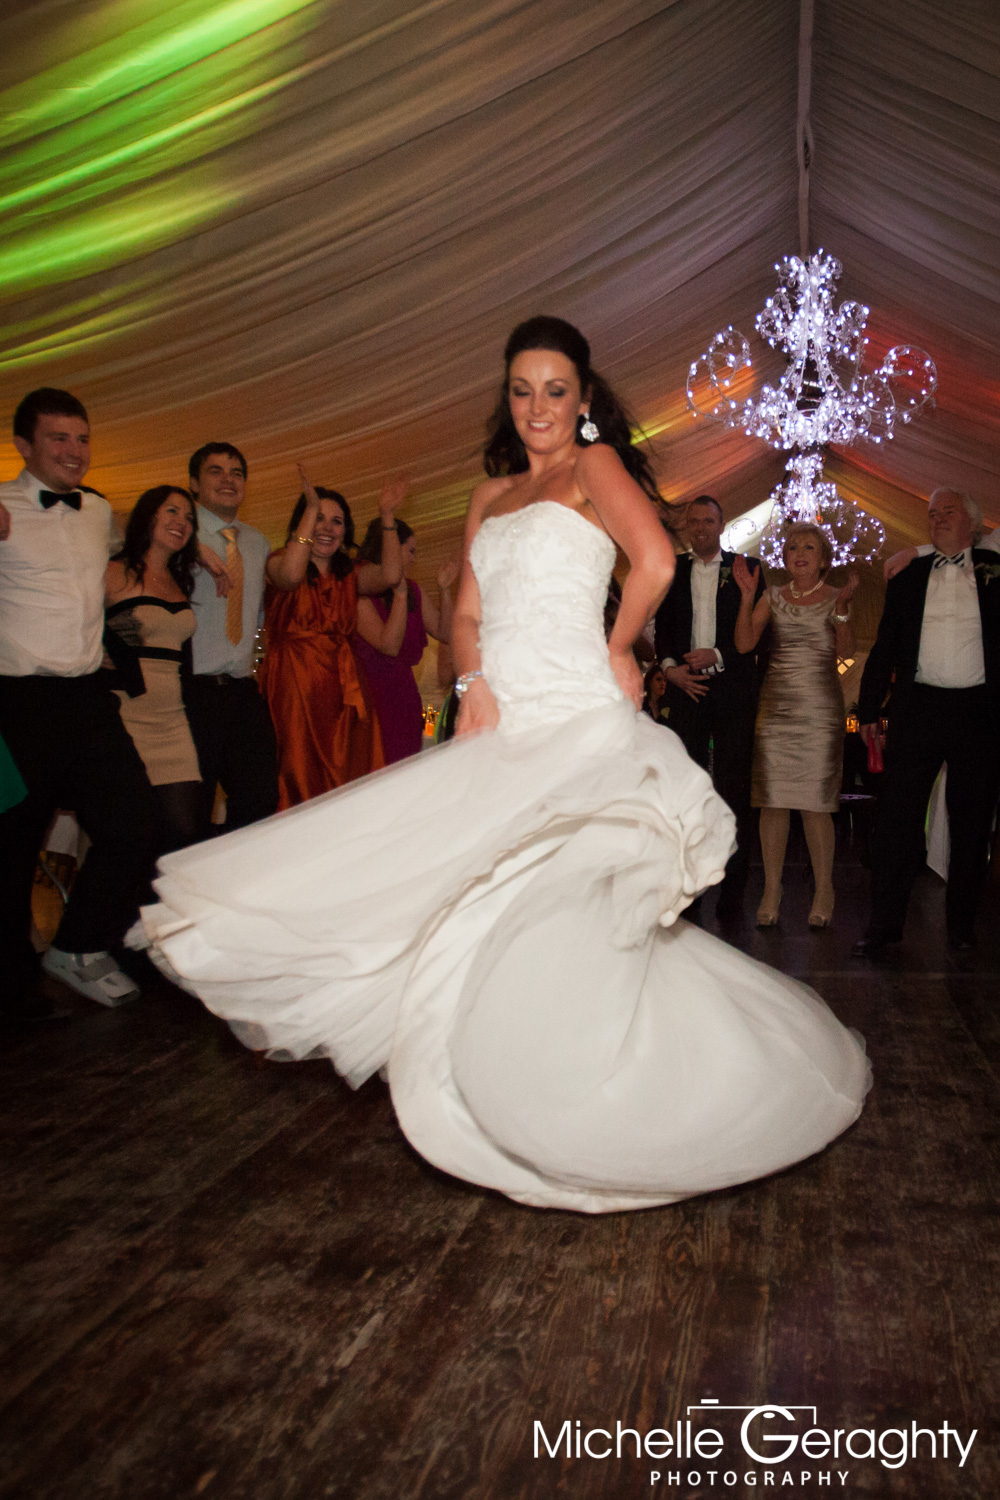 2126-Michelle Geraghty Photography_Mary & Connal-IMG_4848.jpg